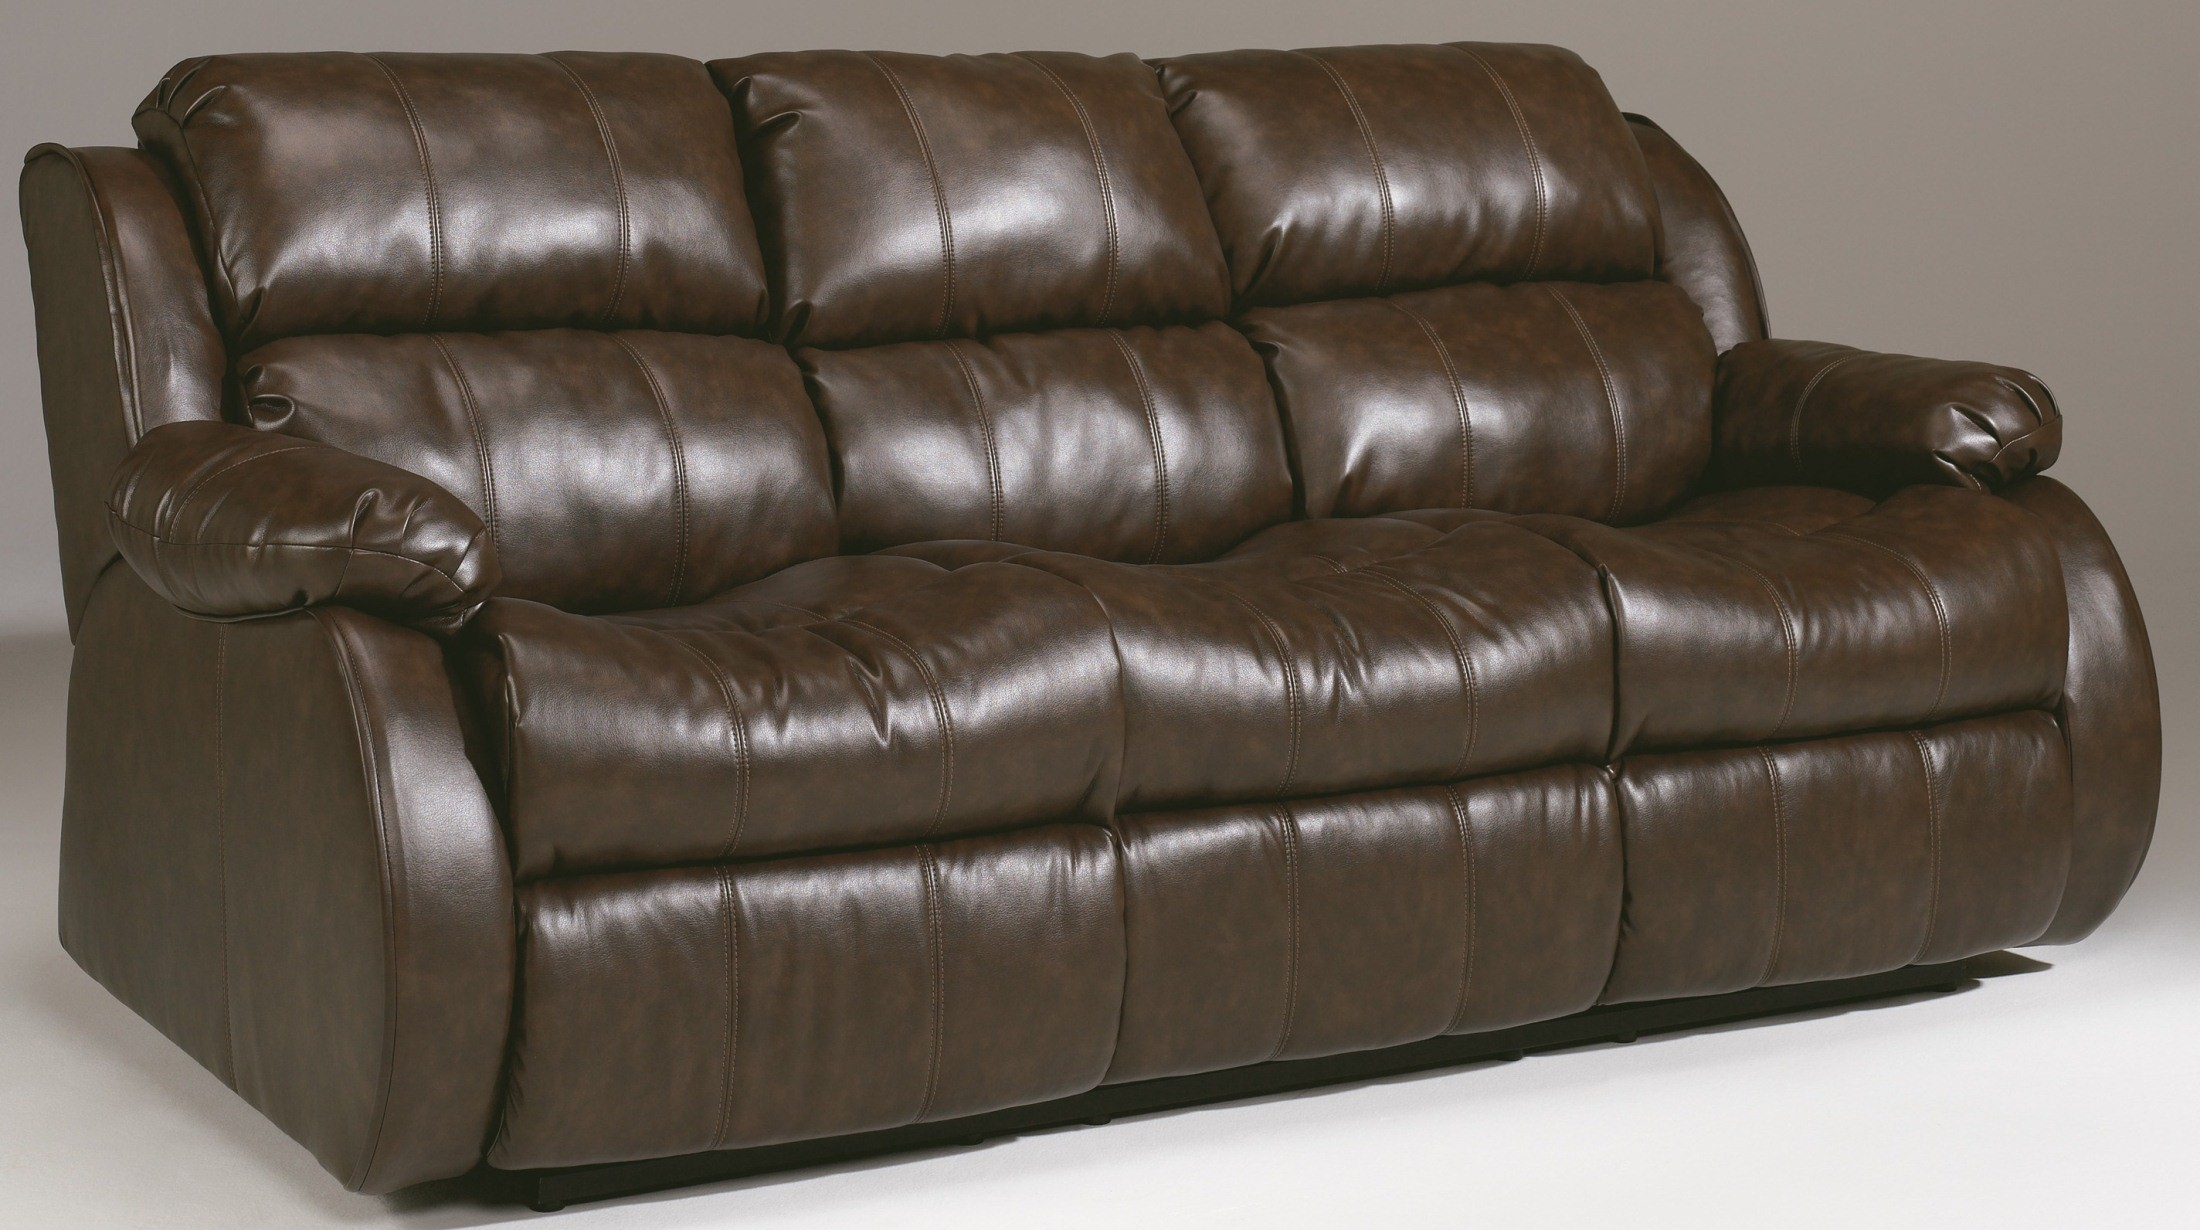 Mollifield Durablend Cafe Reclining Dual Massage Sofa From Ashley 2220089 Coleman Furniture